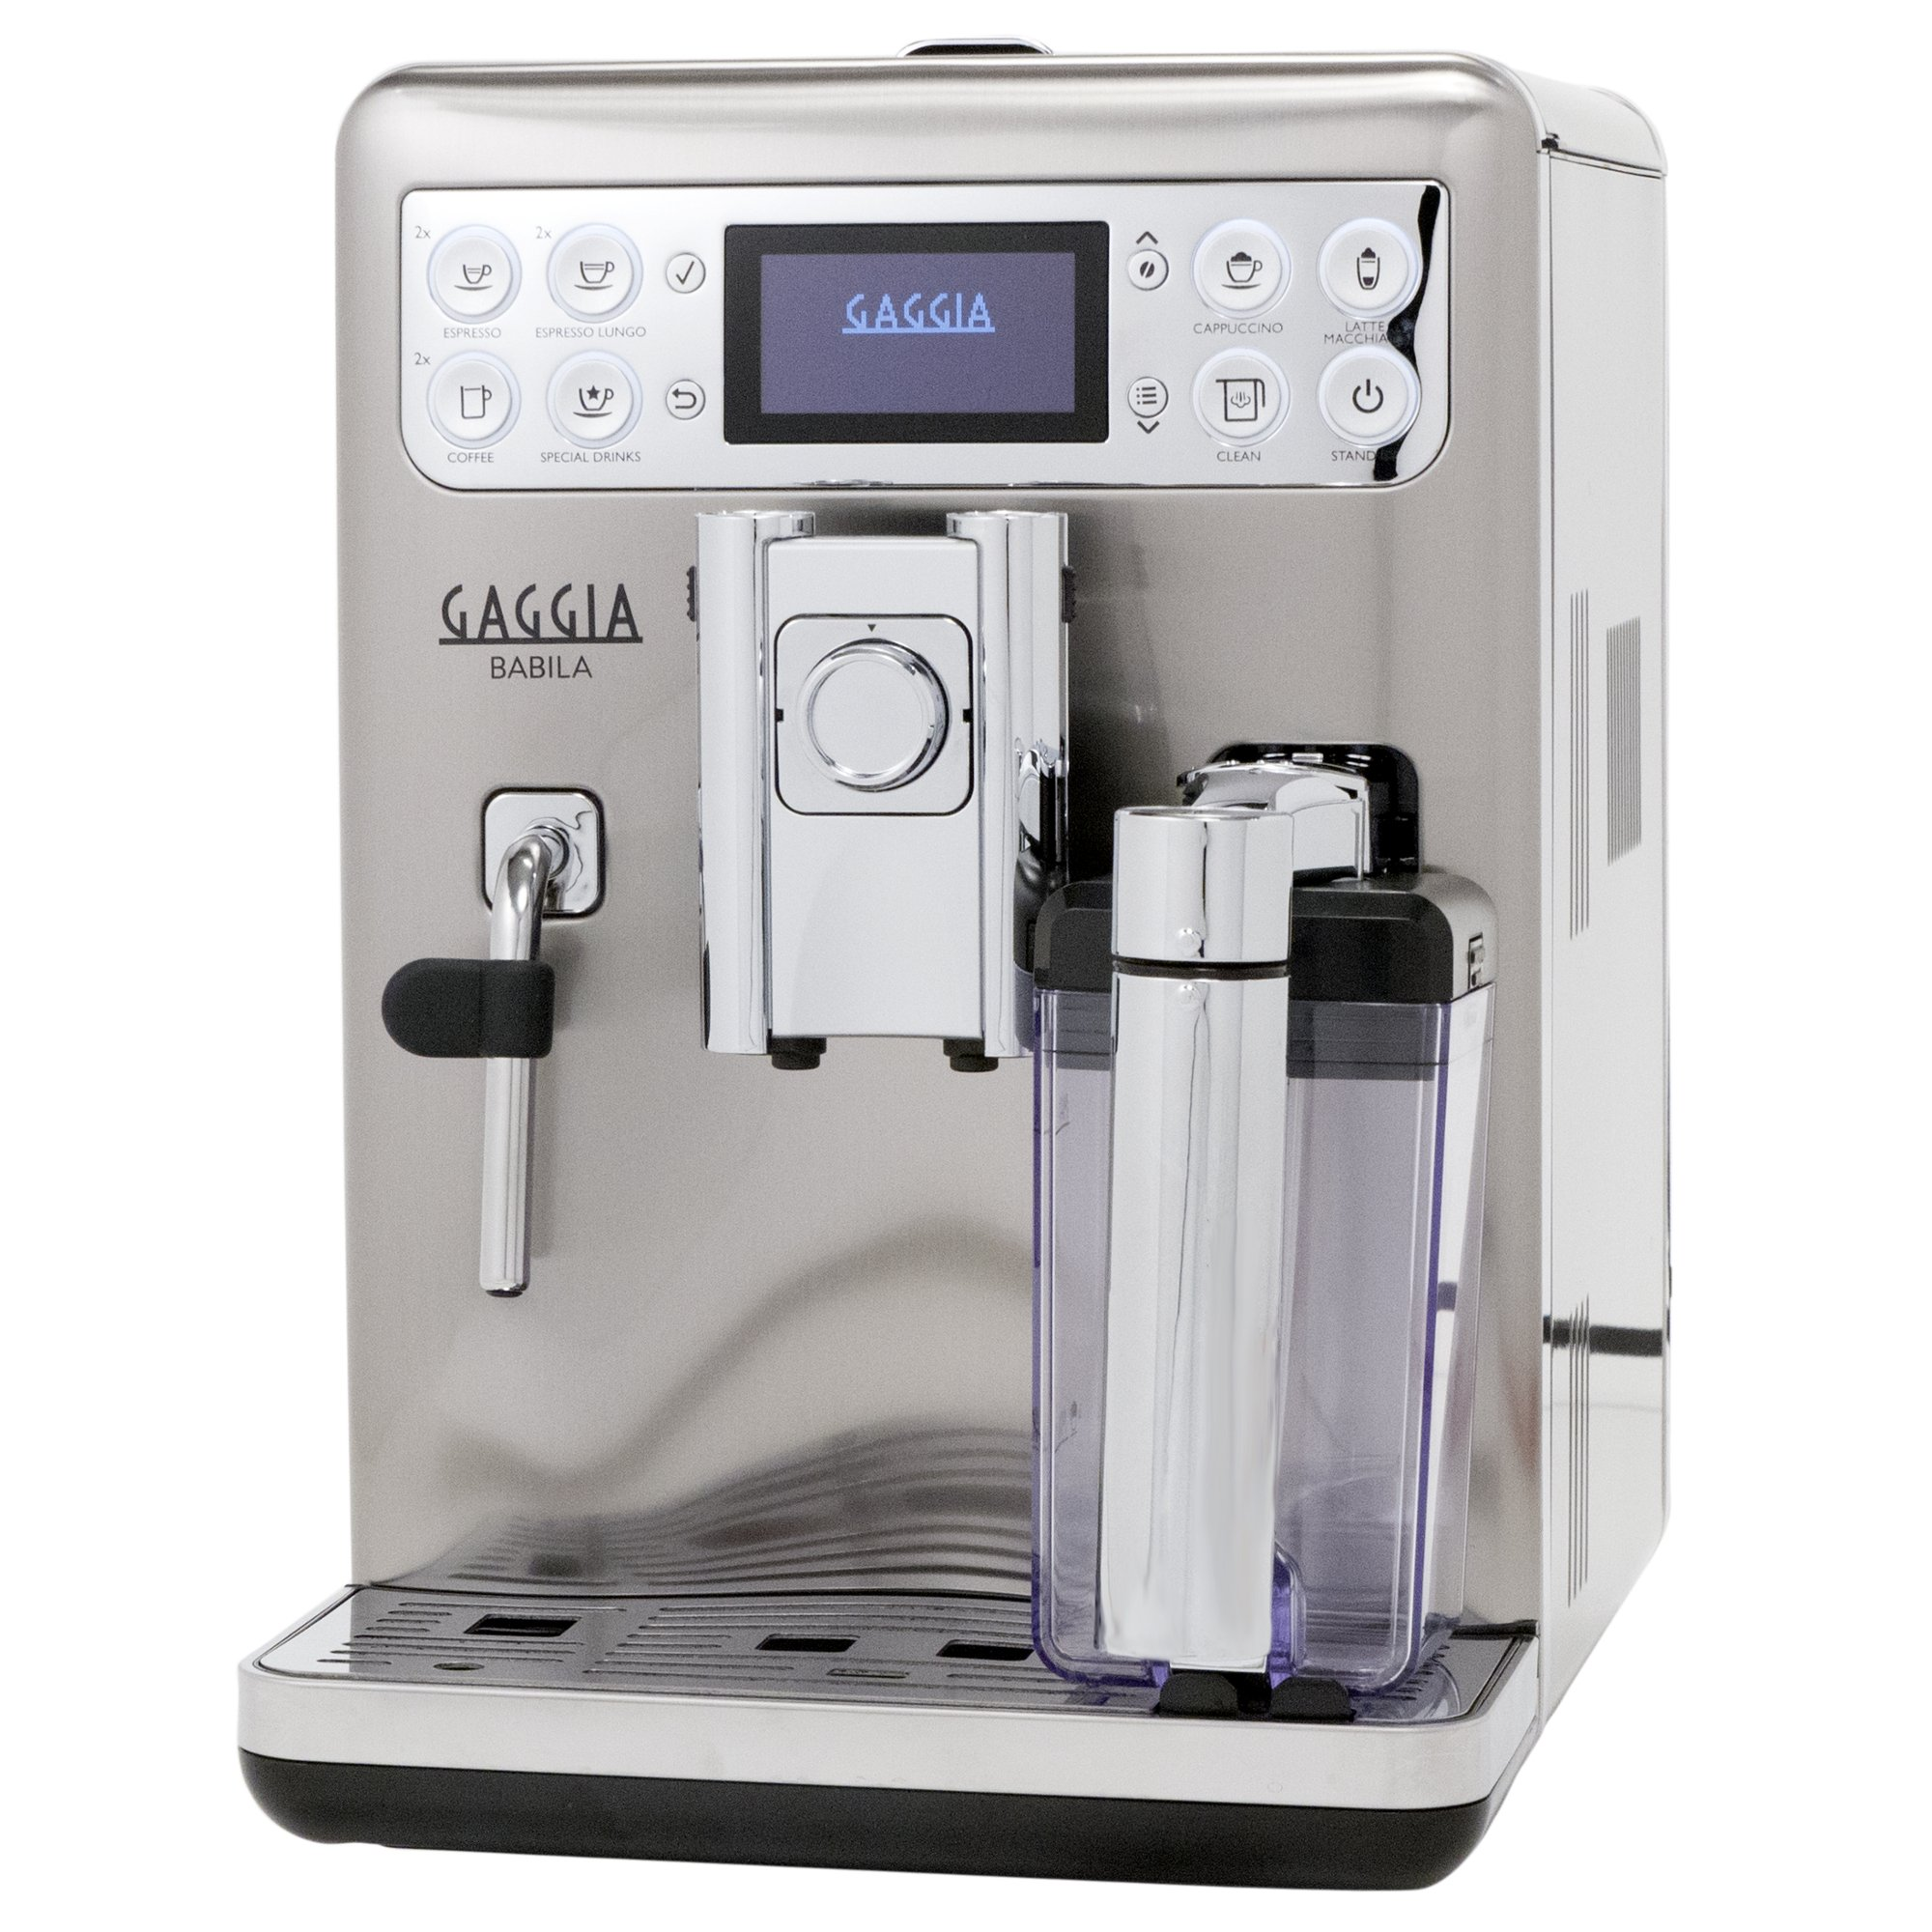 Gaggia RI9700/64 Babila Espresso Machine, Stainless Steel by Gaggia